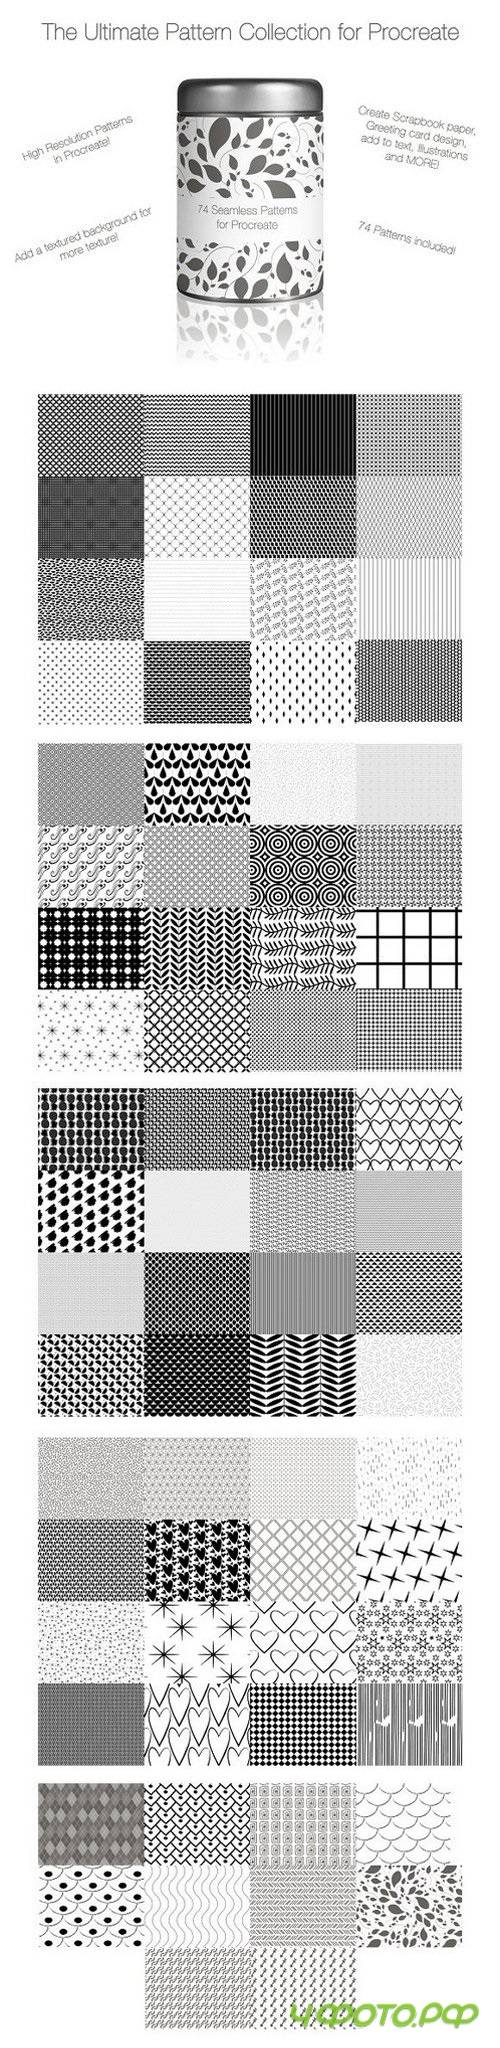 74 Seamless Patterns for Procreate 1354811